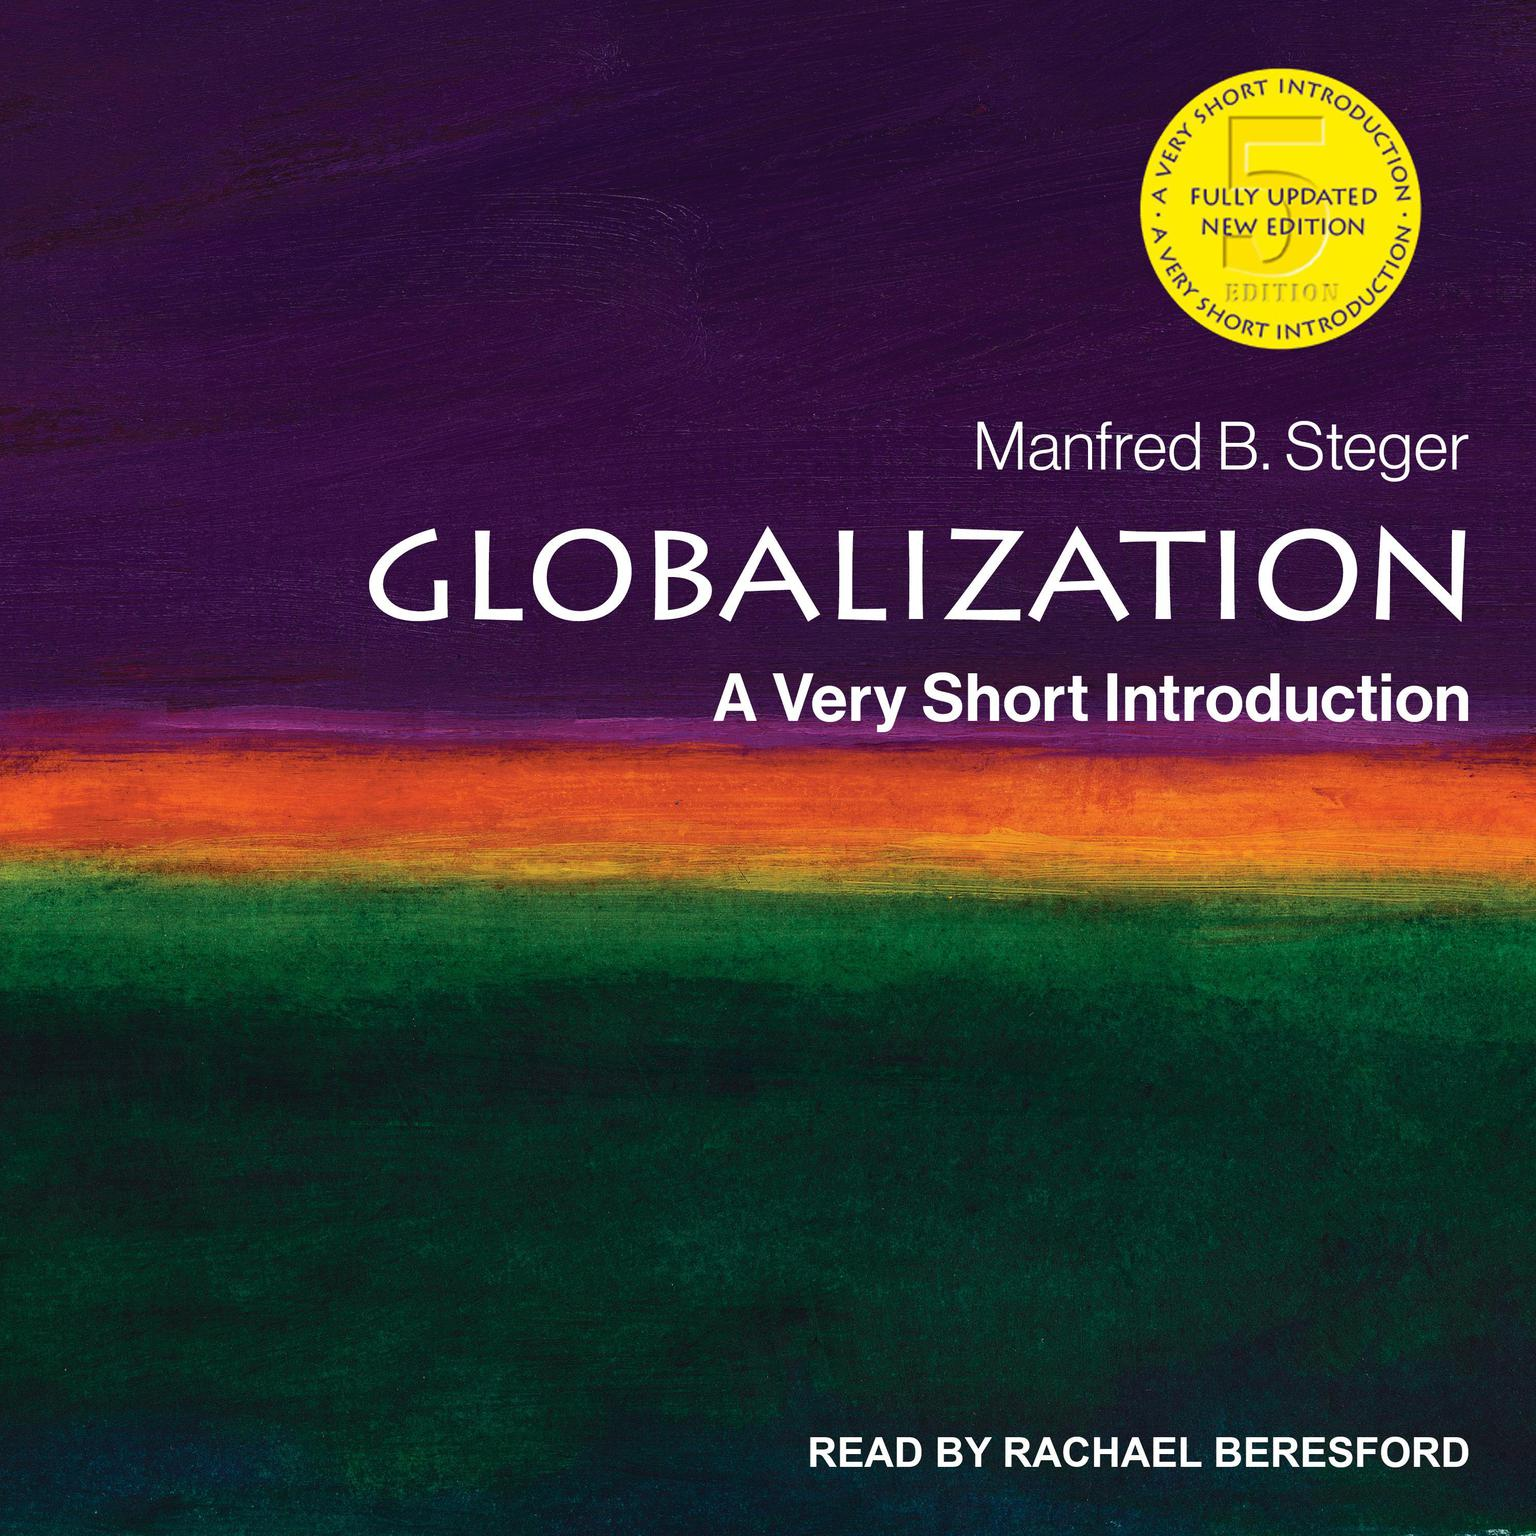 Globalization: A Very Short Introduction, 5th Edition Audiobook, by Manfred B. Steger